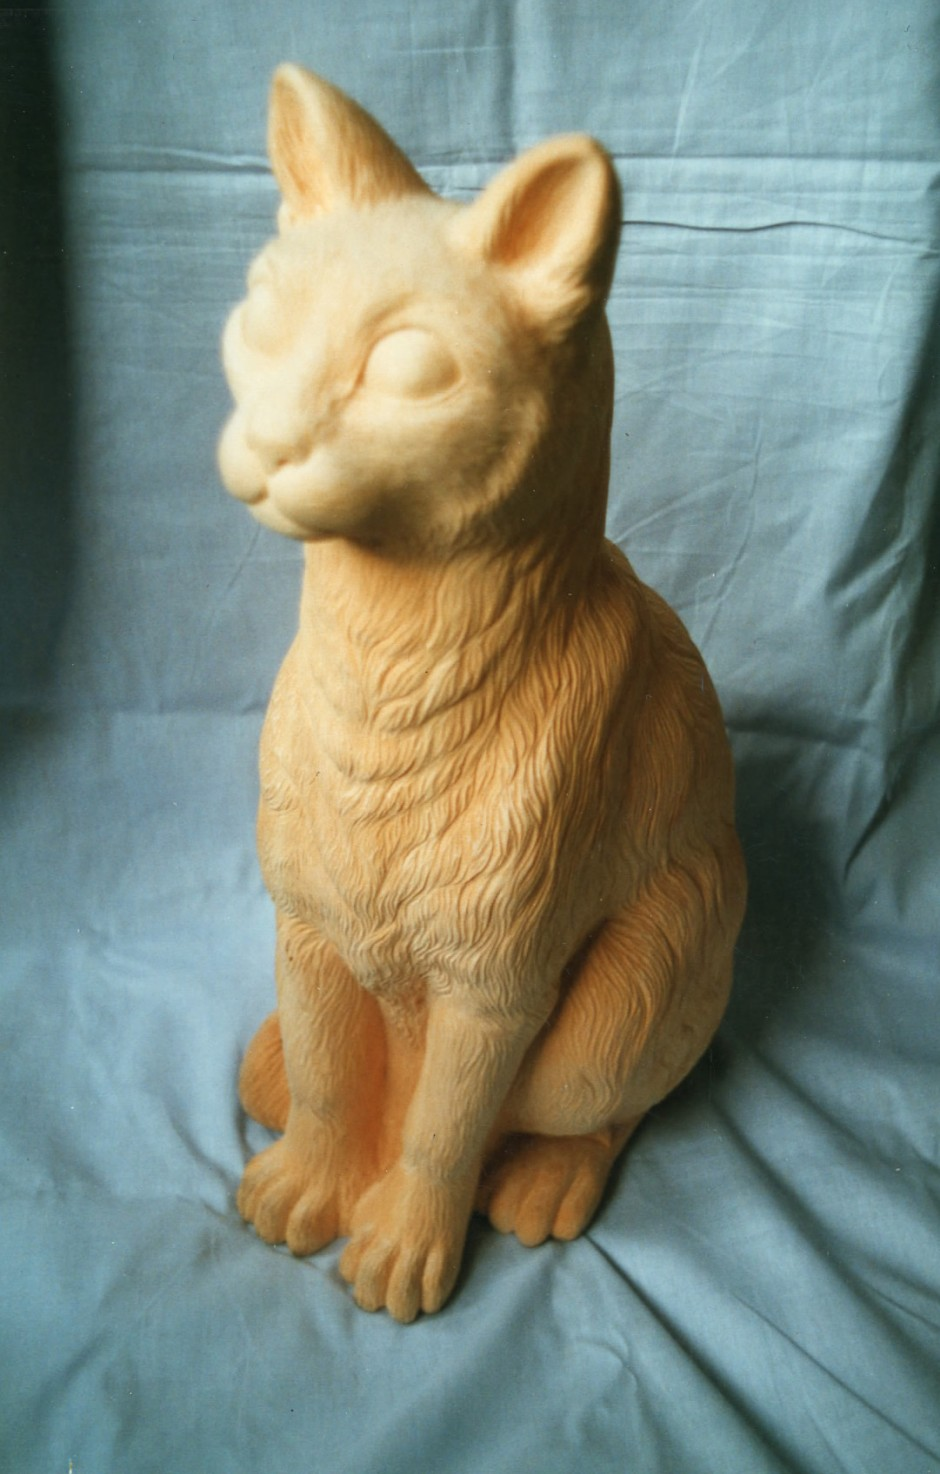 Sitting Cat - sitting cat, wood carving, jelluton